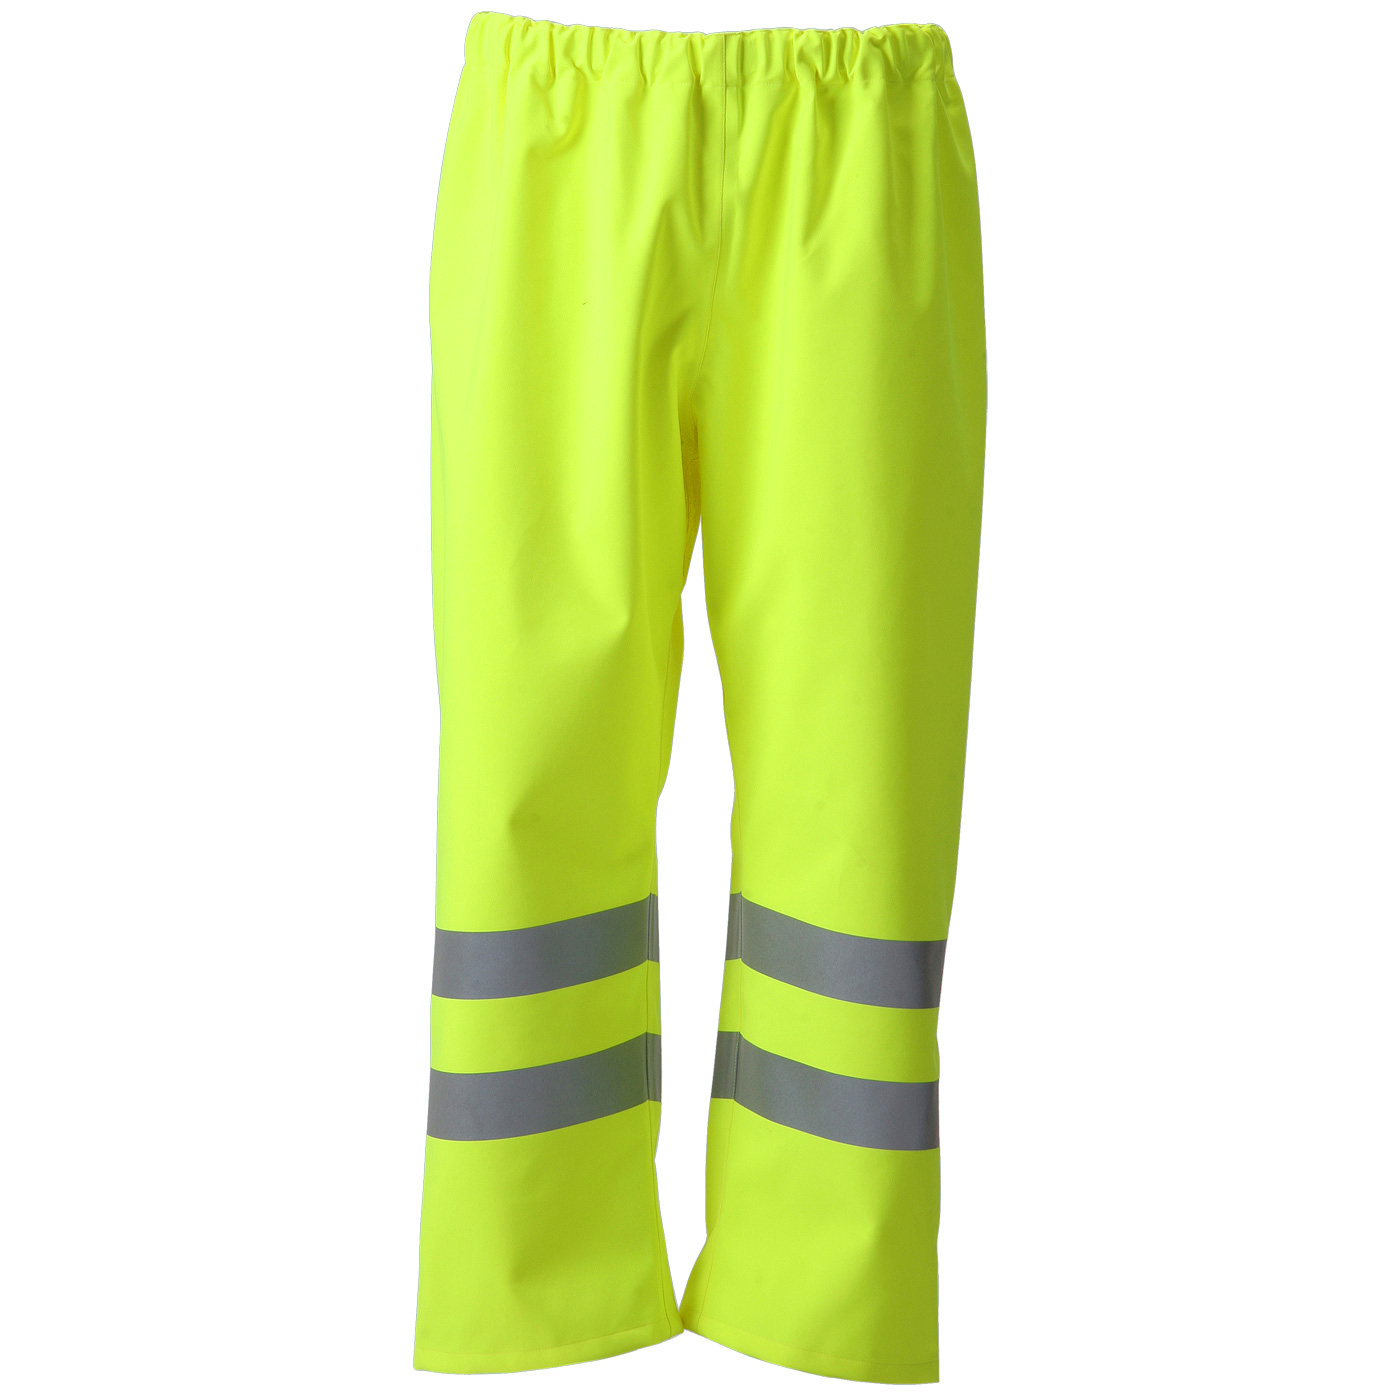 B-Seen Gore-Tex Over Trousers Foul Weather XL Saturn Yellow Ref GTHV160SYXL Up to 3 Day Leadtime